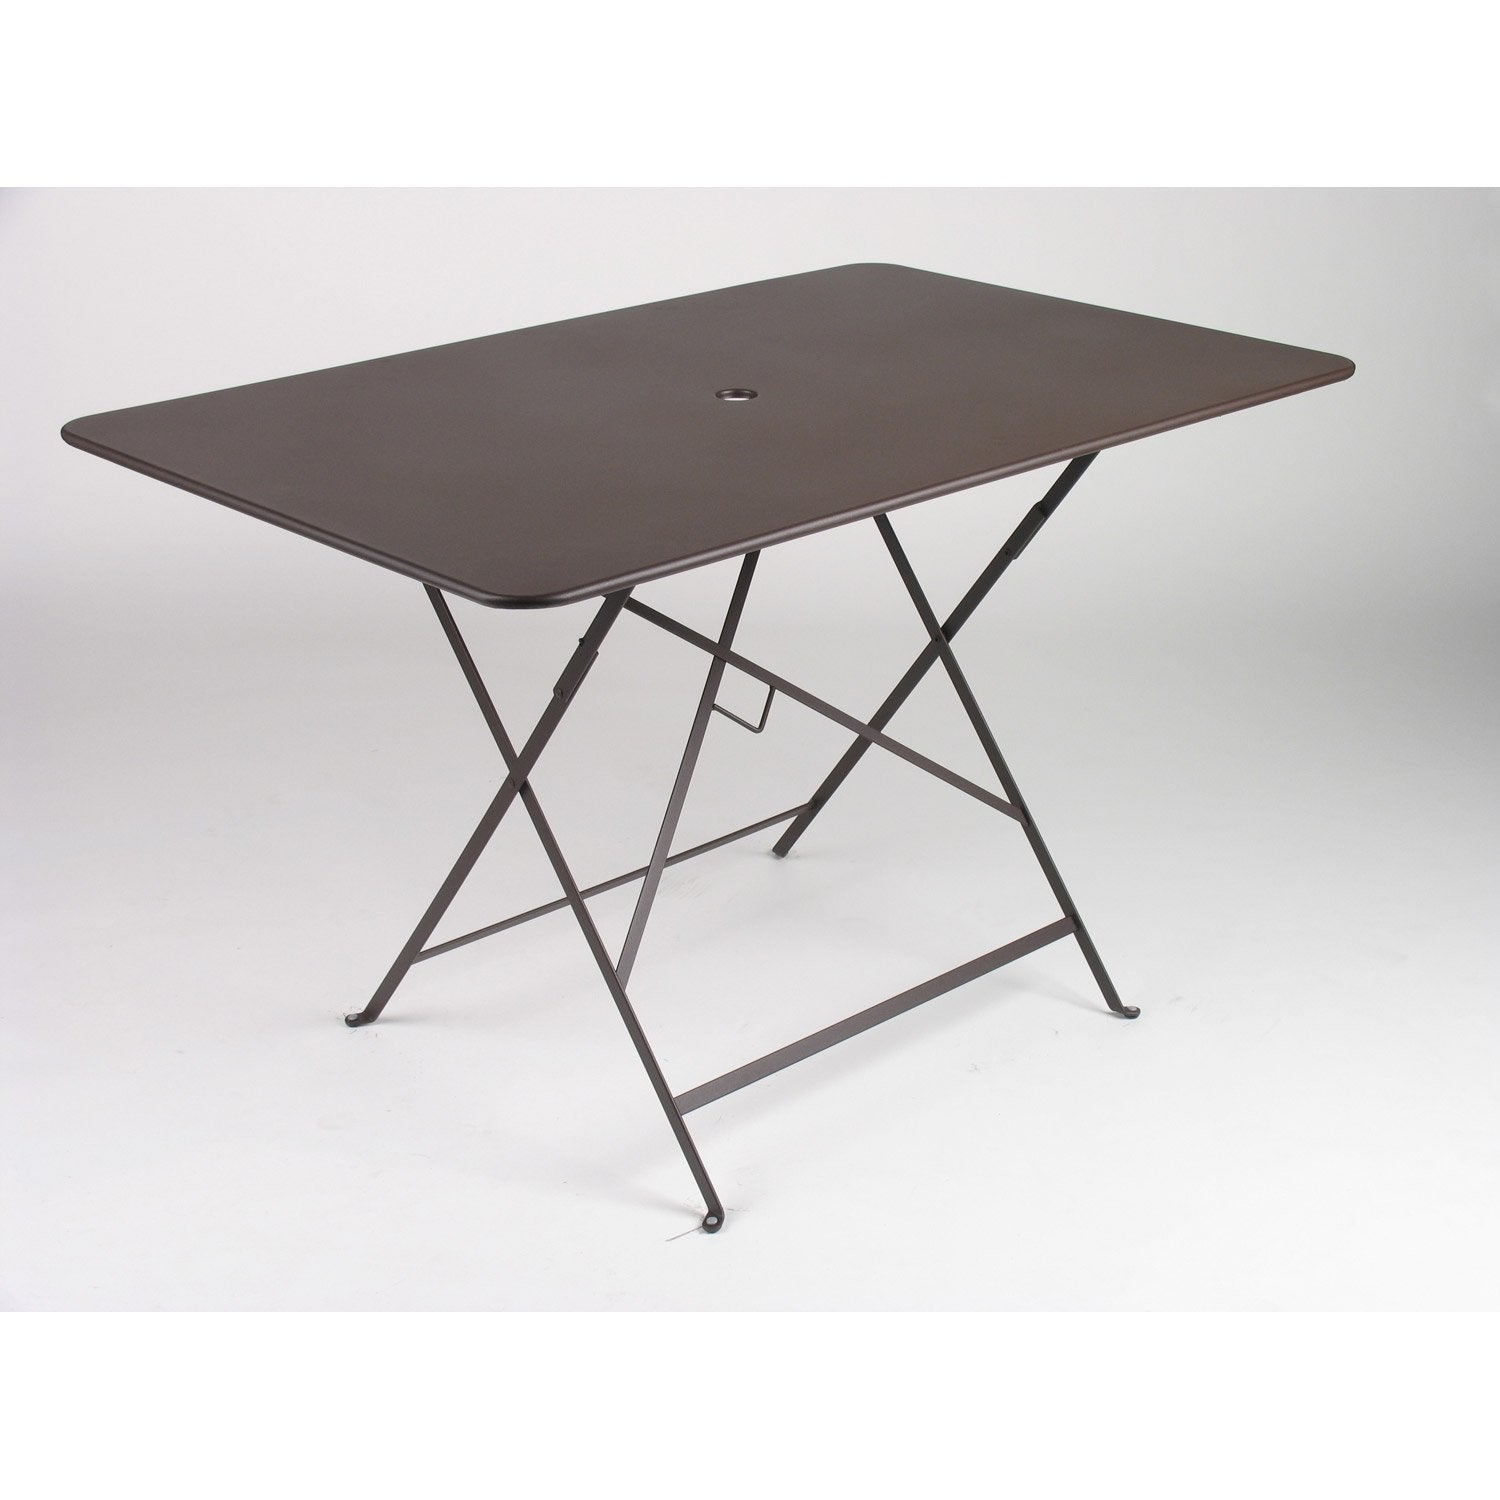 Table de jardin fermob bistro rectangulaire rouille 6 - Leroy merlin table pliante ...